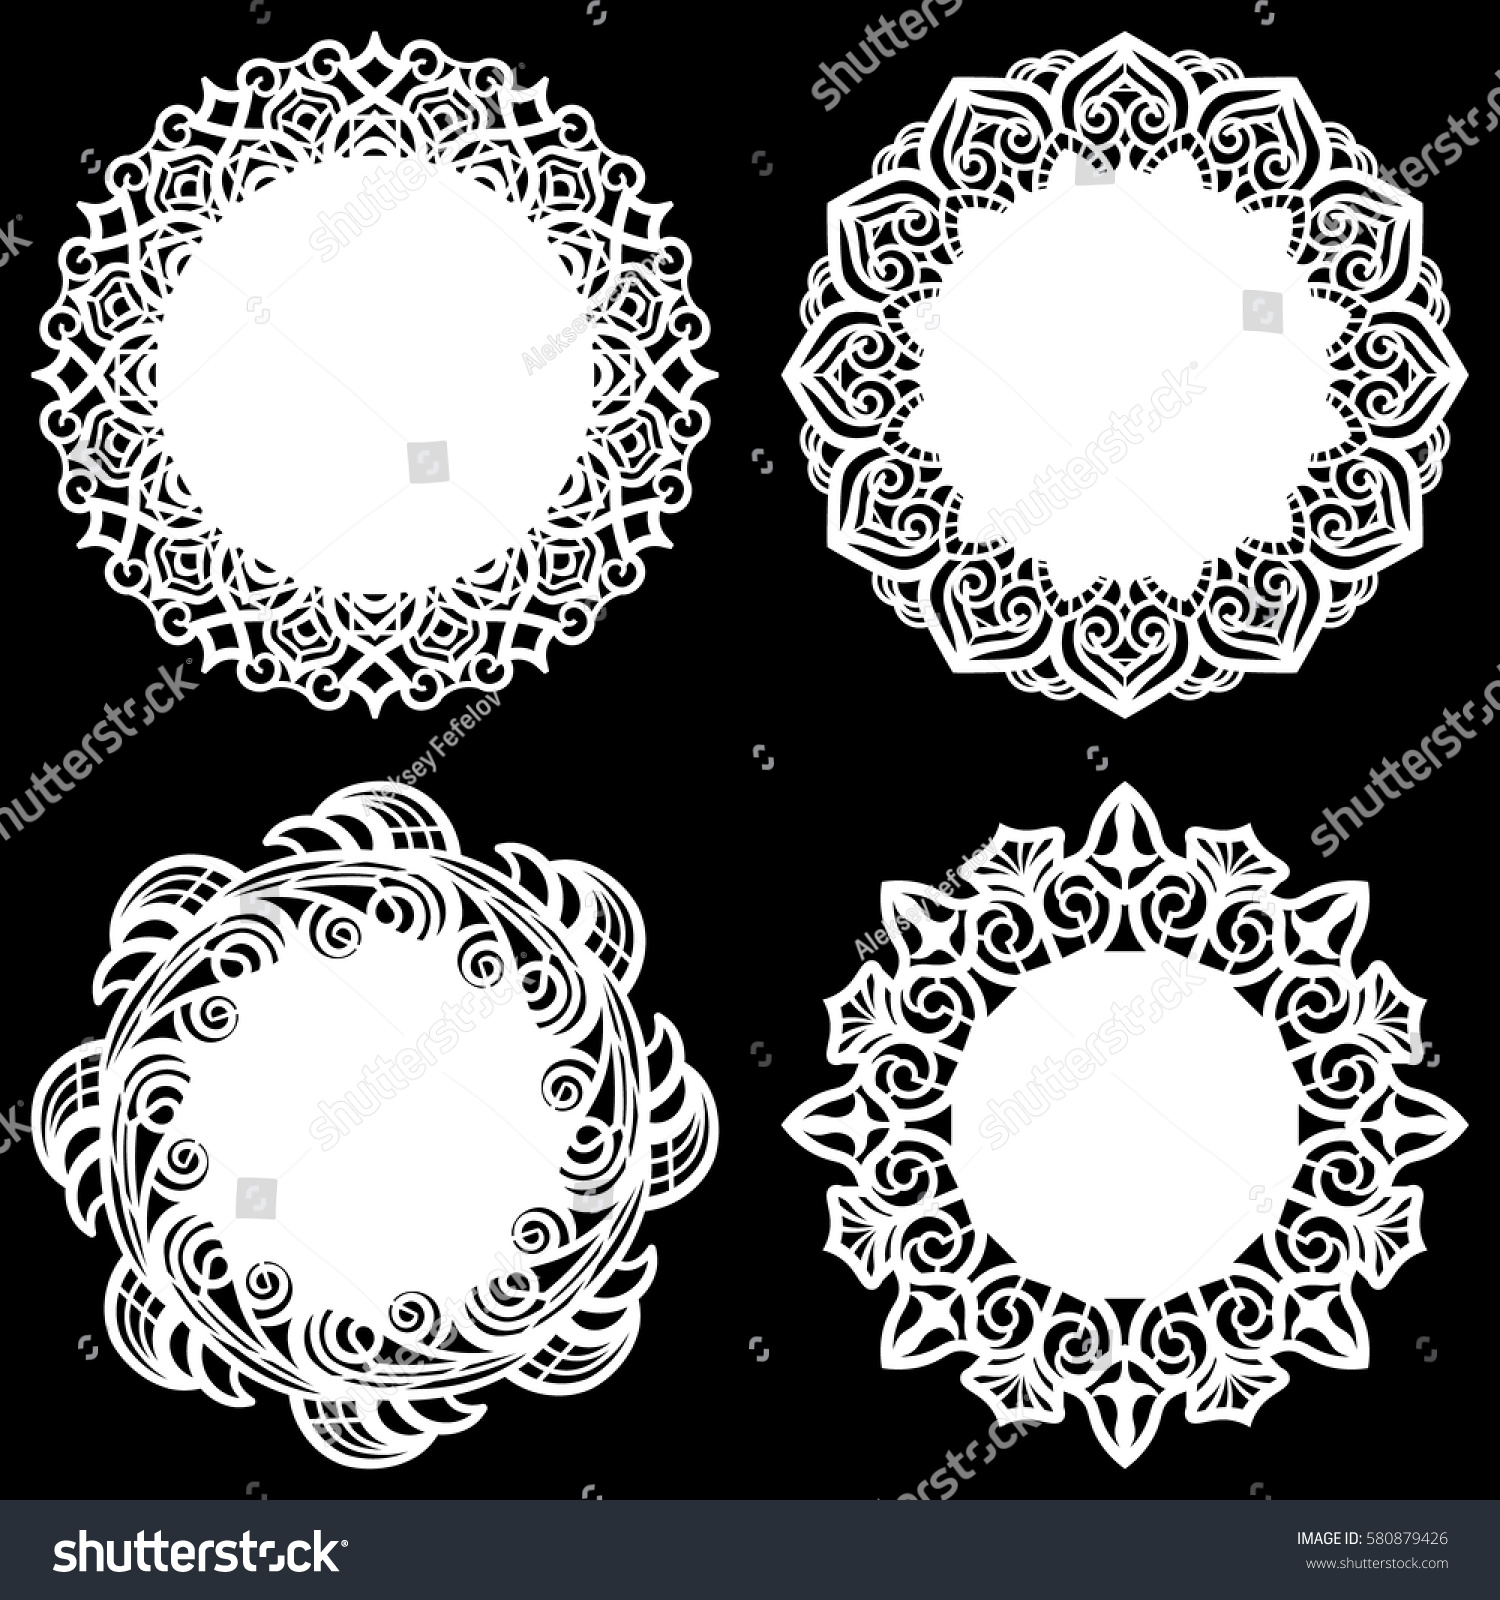 Set Design Elements Lace Round Paper Stock Vector (Royalty Free ...